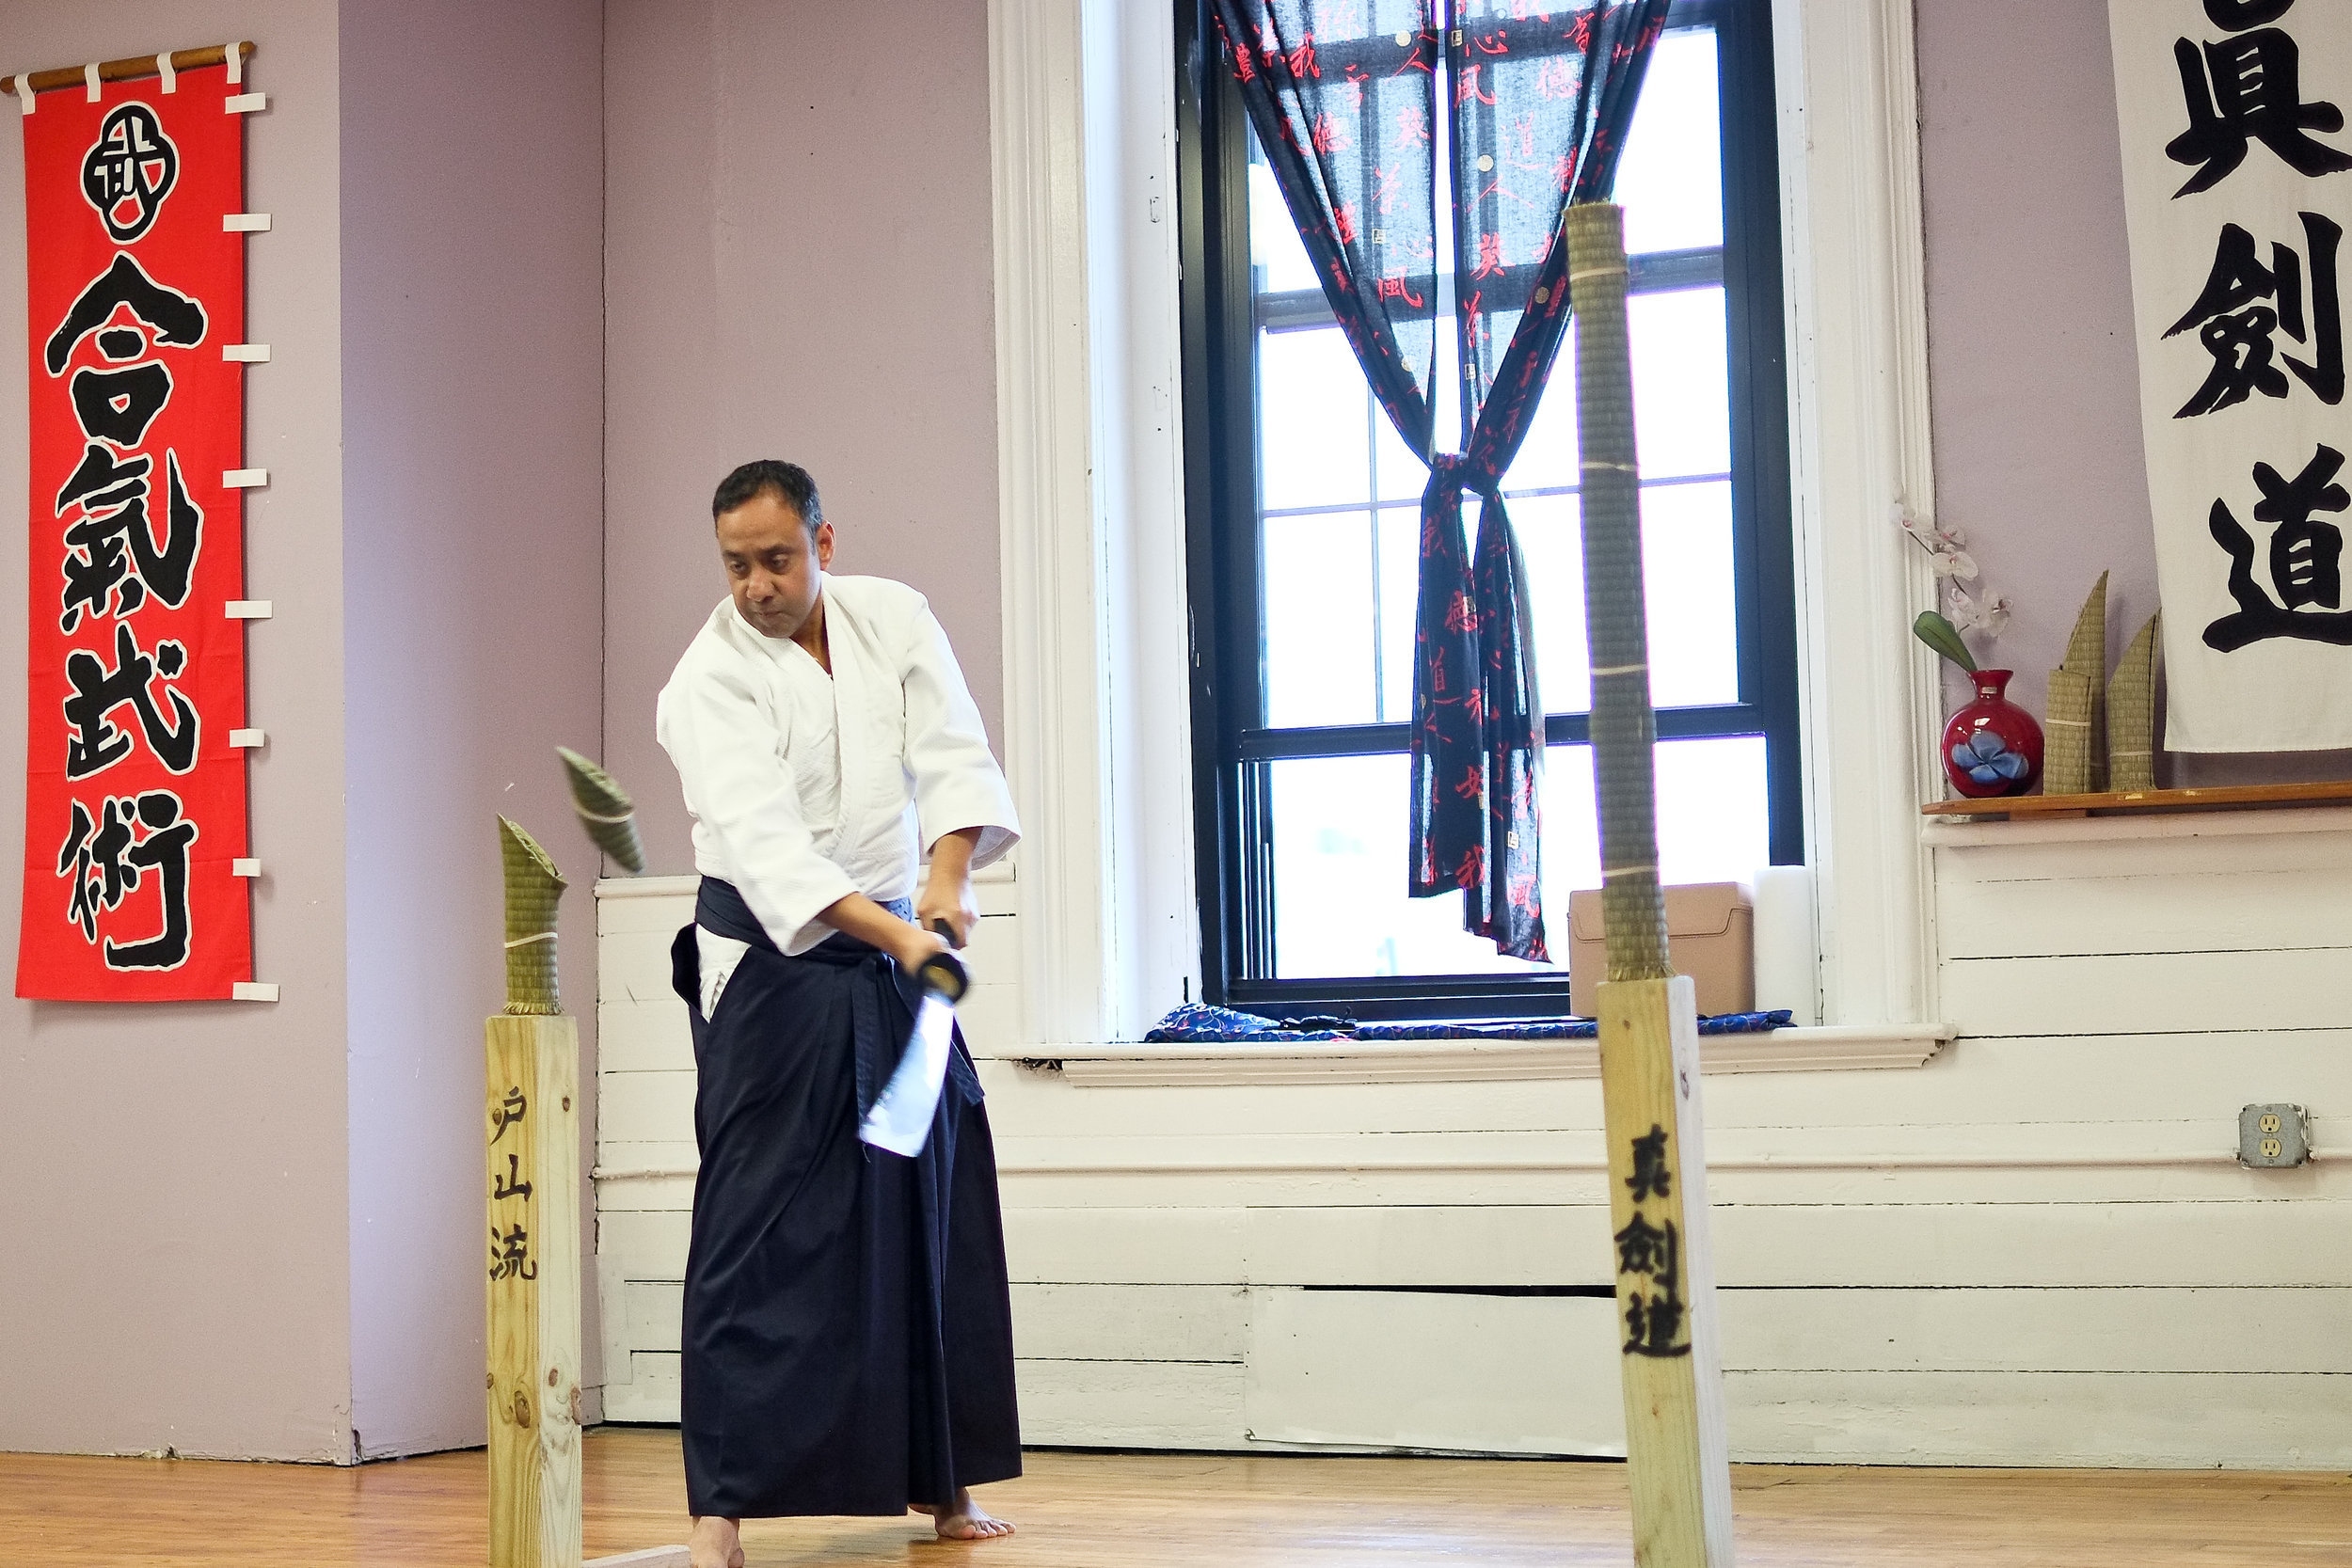 Sensei shaffee bacchus, shinkendo boston shibucho, masterfully demonstrates tameshigiri (試し切り, test cut) with a live blade.